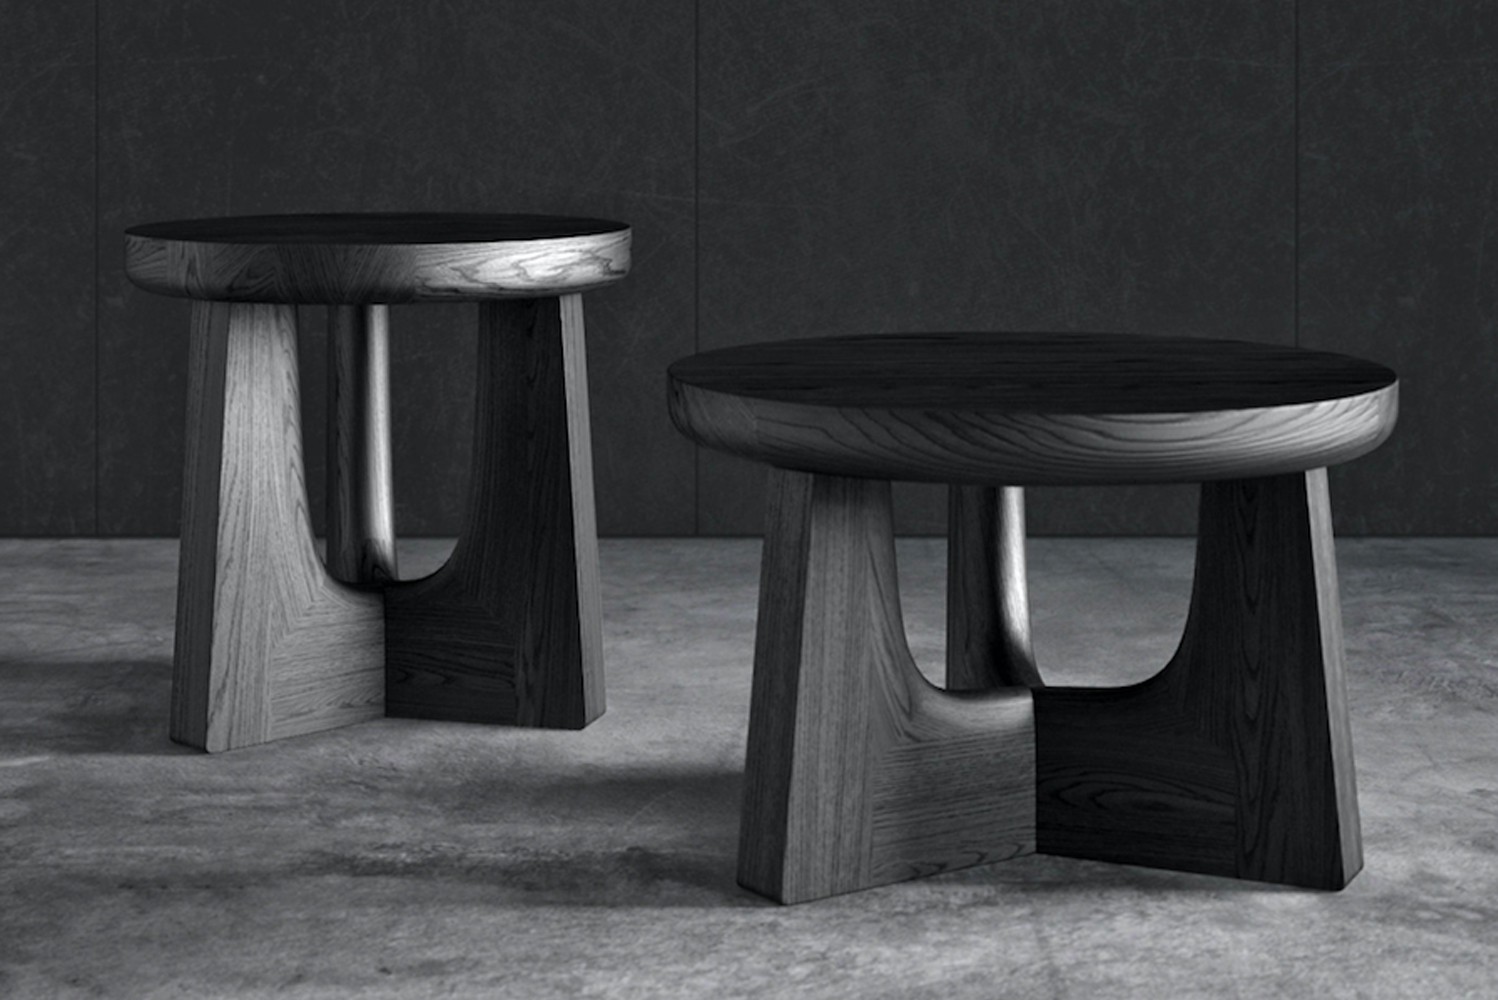 Poliform launched Nara, a versatile piece of furniture used as a table, stool, bedside table or a coffee table.